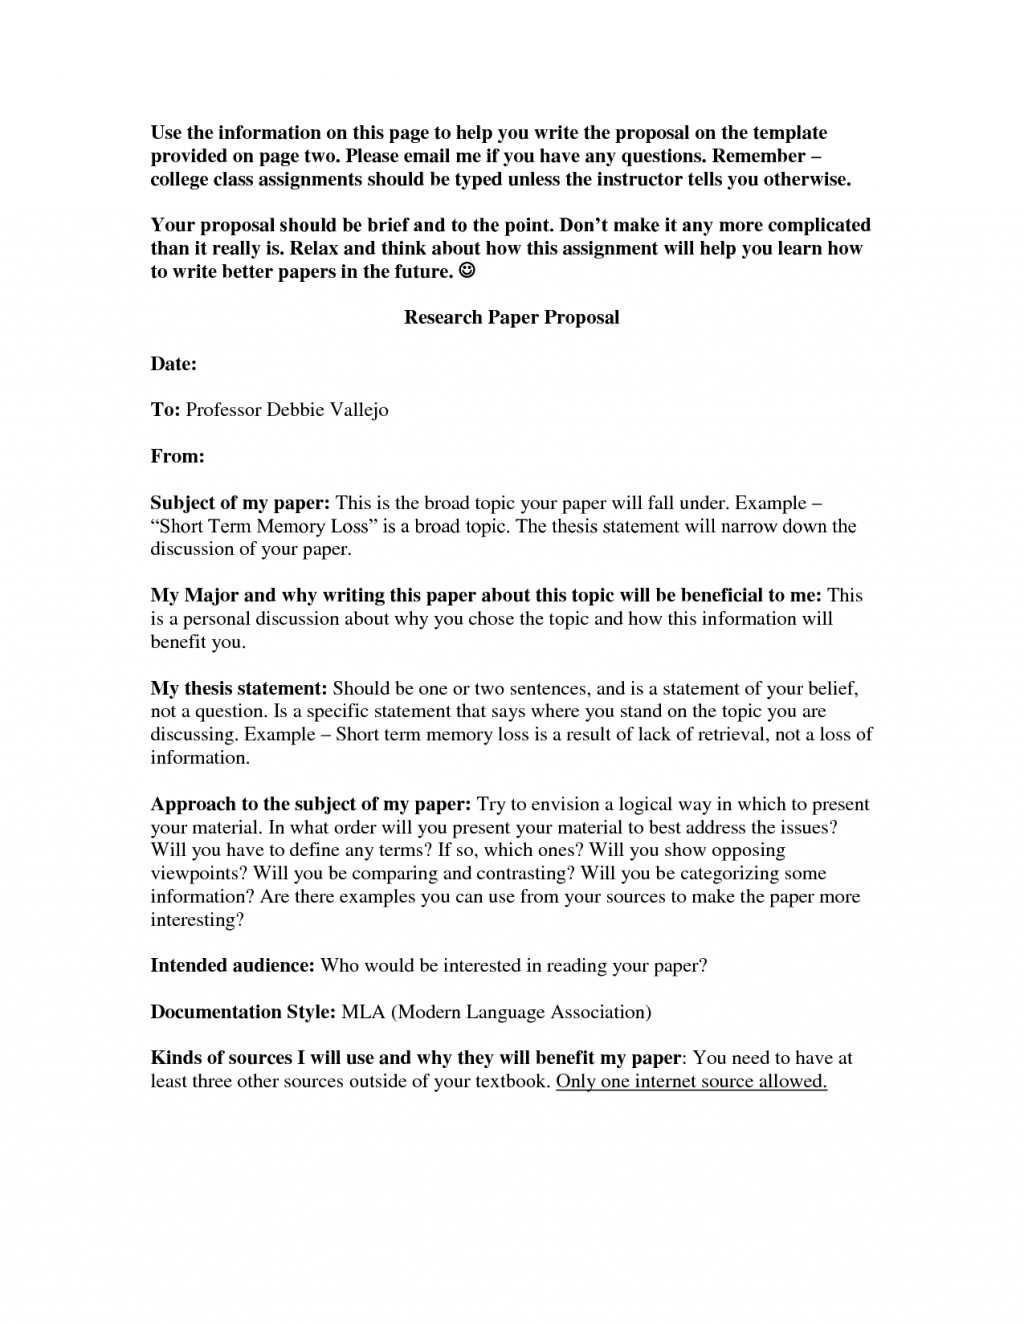 007 Angel Beats 614610 Proposal Essays Essay Awesome Modest Examples On Bullying Large